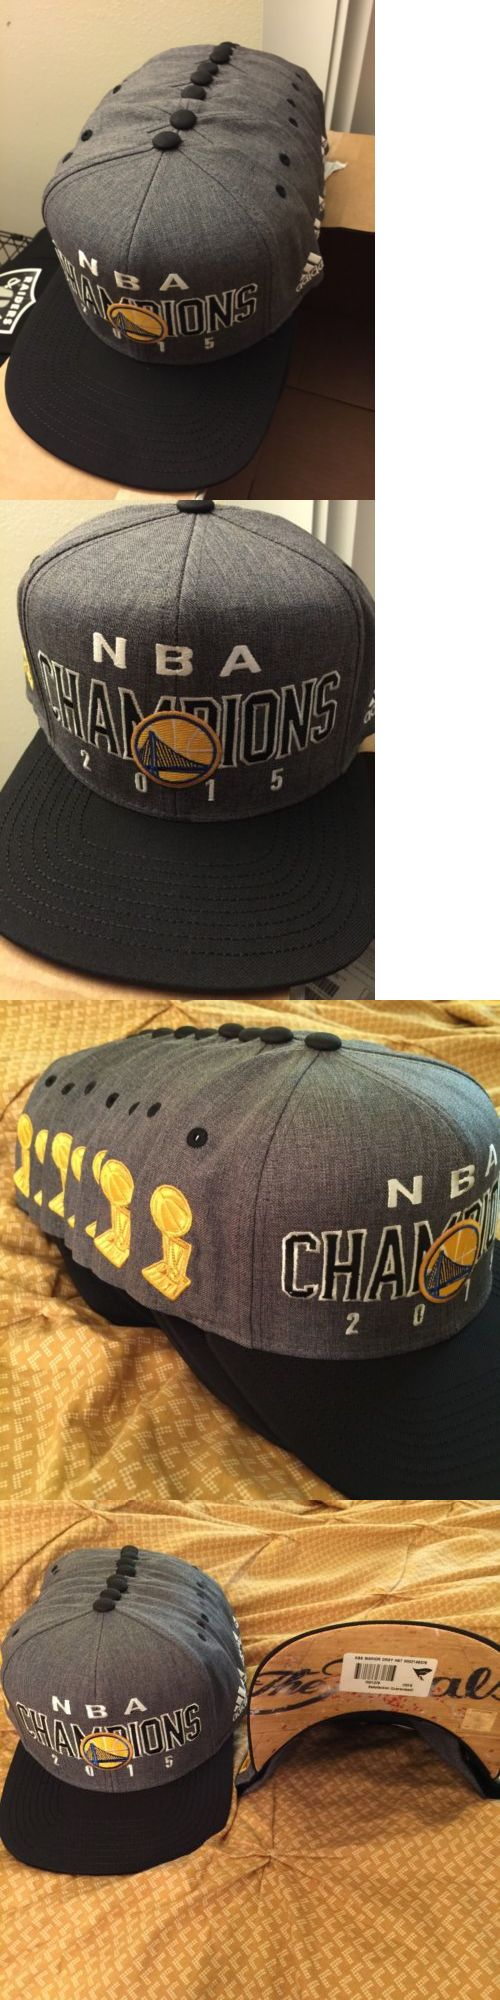 Hats and Headwear 158968: Warriors 2015 Nba Champions Adidas Snapback BUY IT NOW ONLY: $35.0